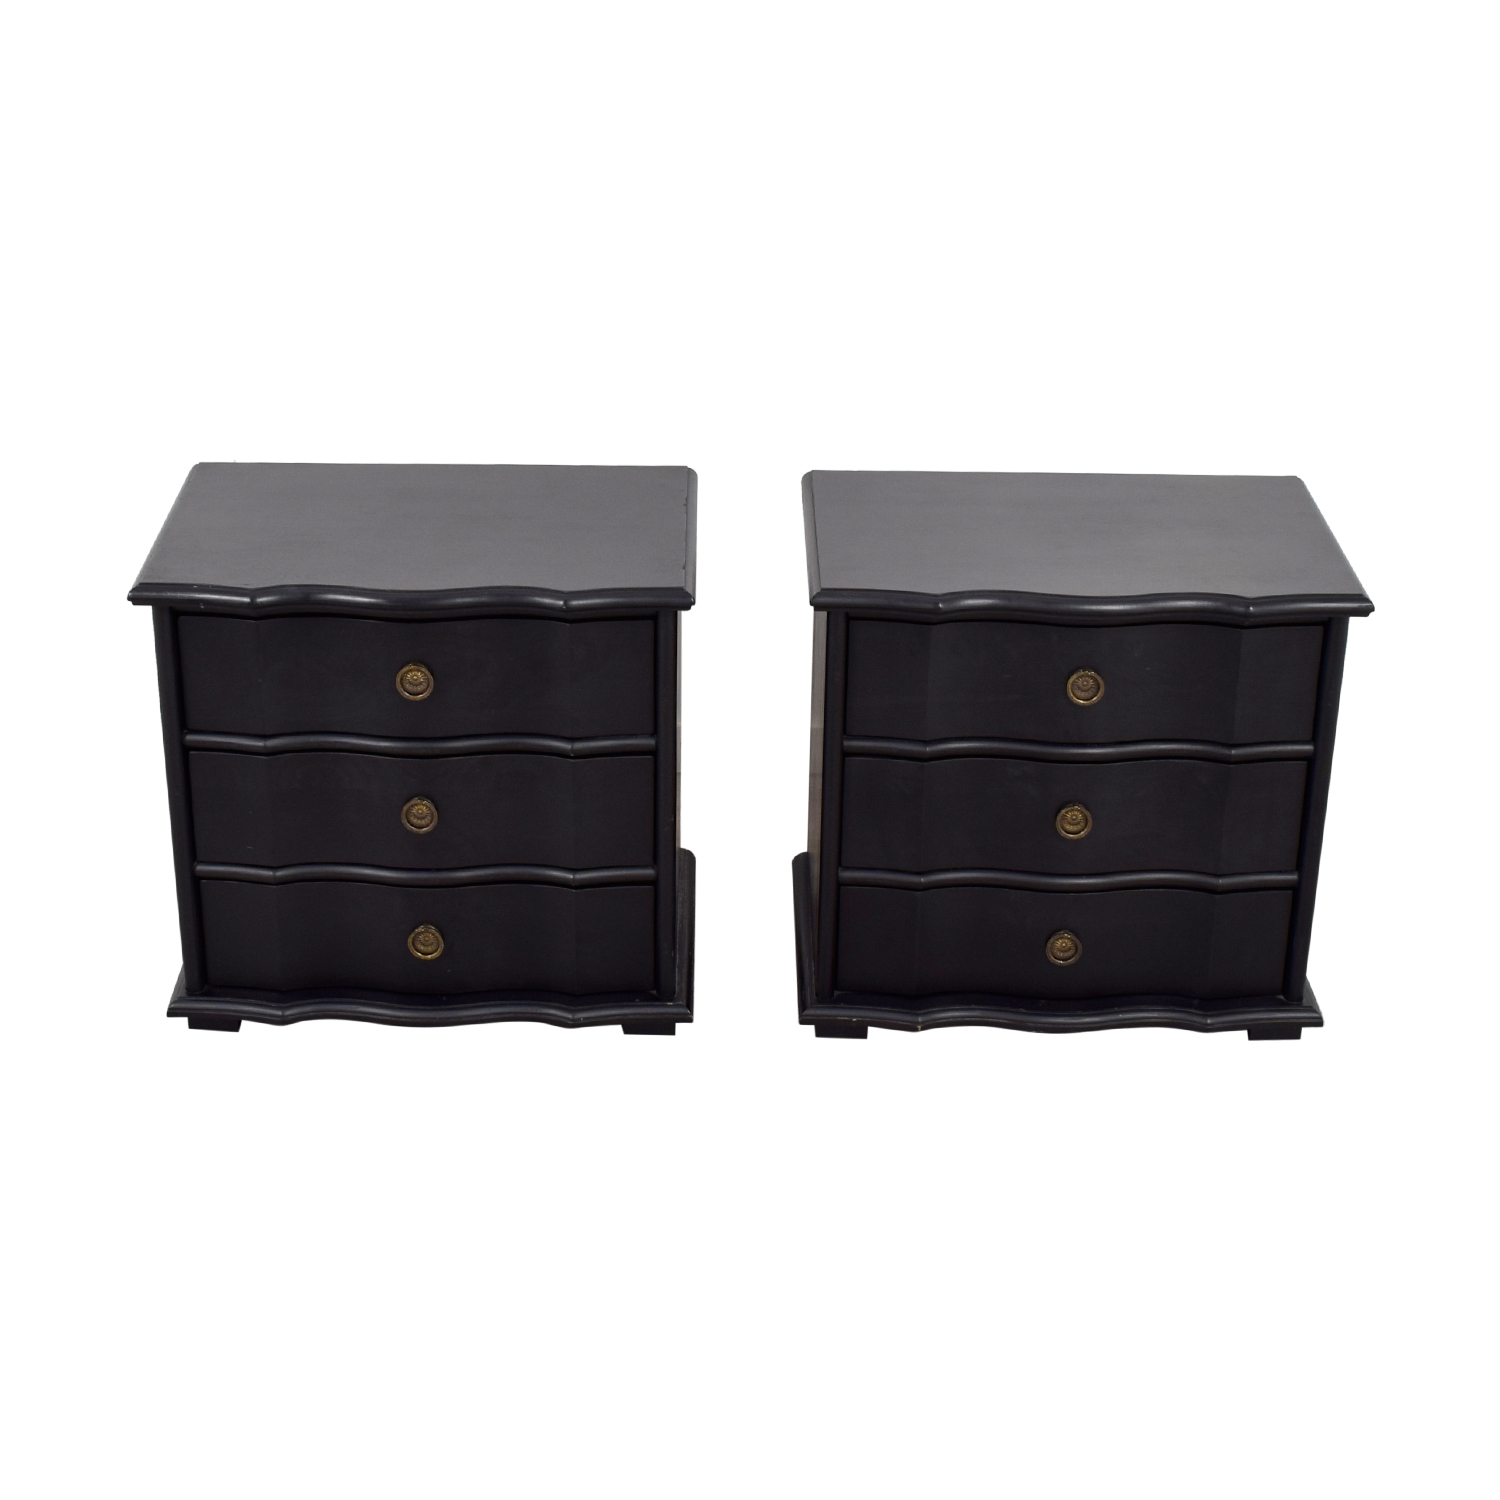 Restoration Hardware Restoration Hardware Italian Baroque Black Wood Three-Drawer Nightstands price